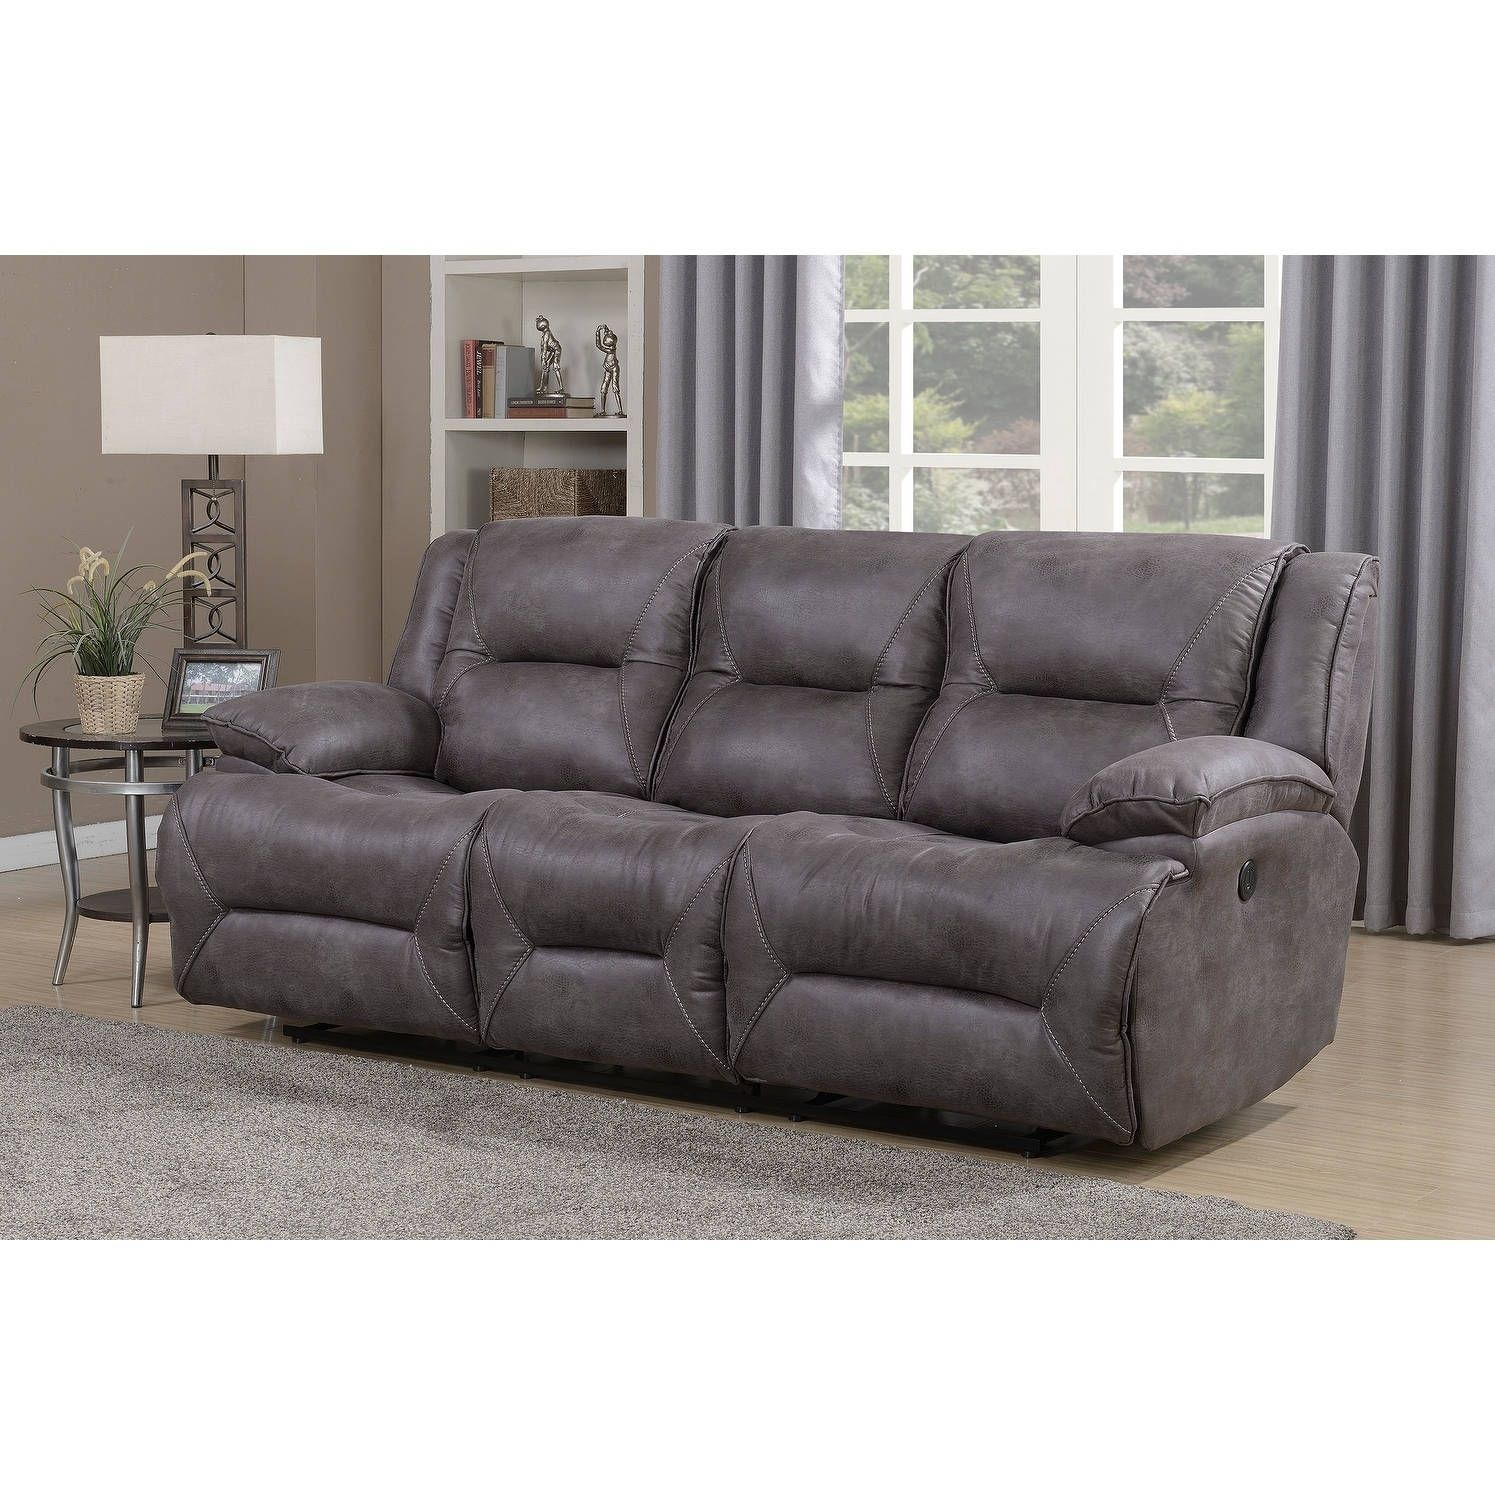 Astonishing Dylan Dual Power Reclining Sofa With Memory Foam Seat Dailytribune Chair Design For Home Dailytribuneorg